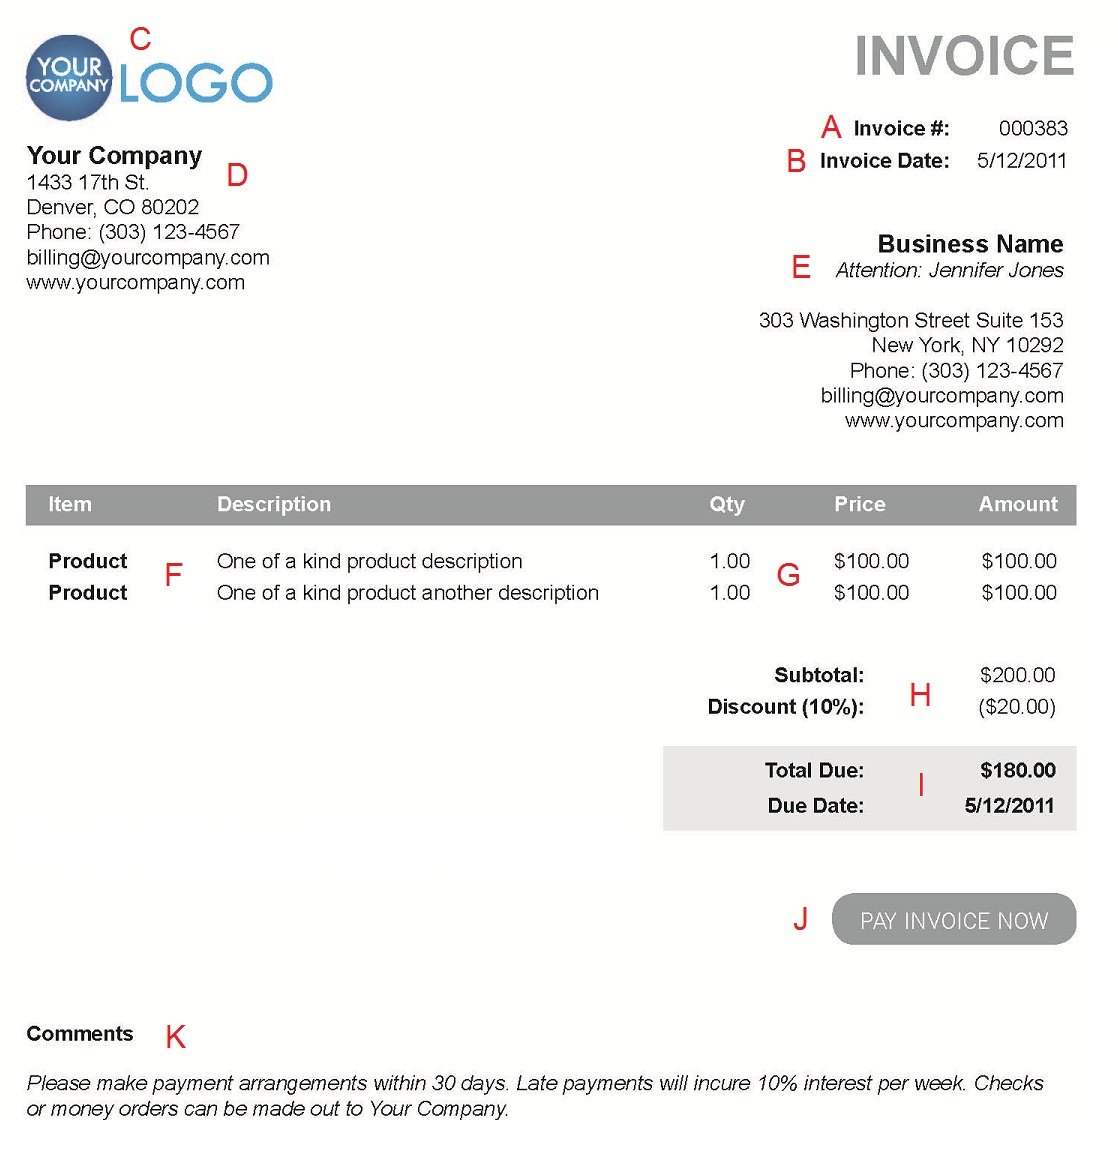 Ultrablogus  Outstanding The  Different Sections Of An Electronic Payment Invoice With Engaging A  With Astounding Definition Of Gross Receipts Also Delta Flight Receipt In Addition How To Make A Fake Money Order Receipt And Acknowledge Receipt Of Email As Well As Receipt Printer For Android Additionally Receipt Scan From Paysimplecom With Ultrablogus  Engaging The  Different Sections Of An Electronic Payment Invoice With Astounding A  And Outstanding Definition Of Gross Receipts Also Delta Flight Receipt In Addition How To Make A Fake Money Order Receipt From Paysimplecom